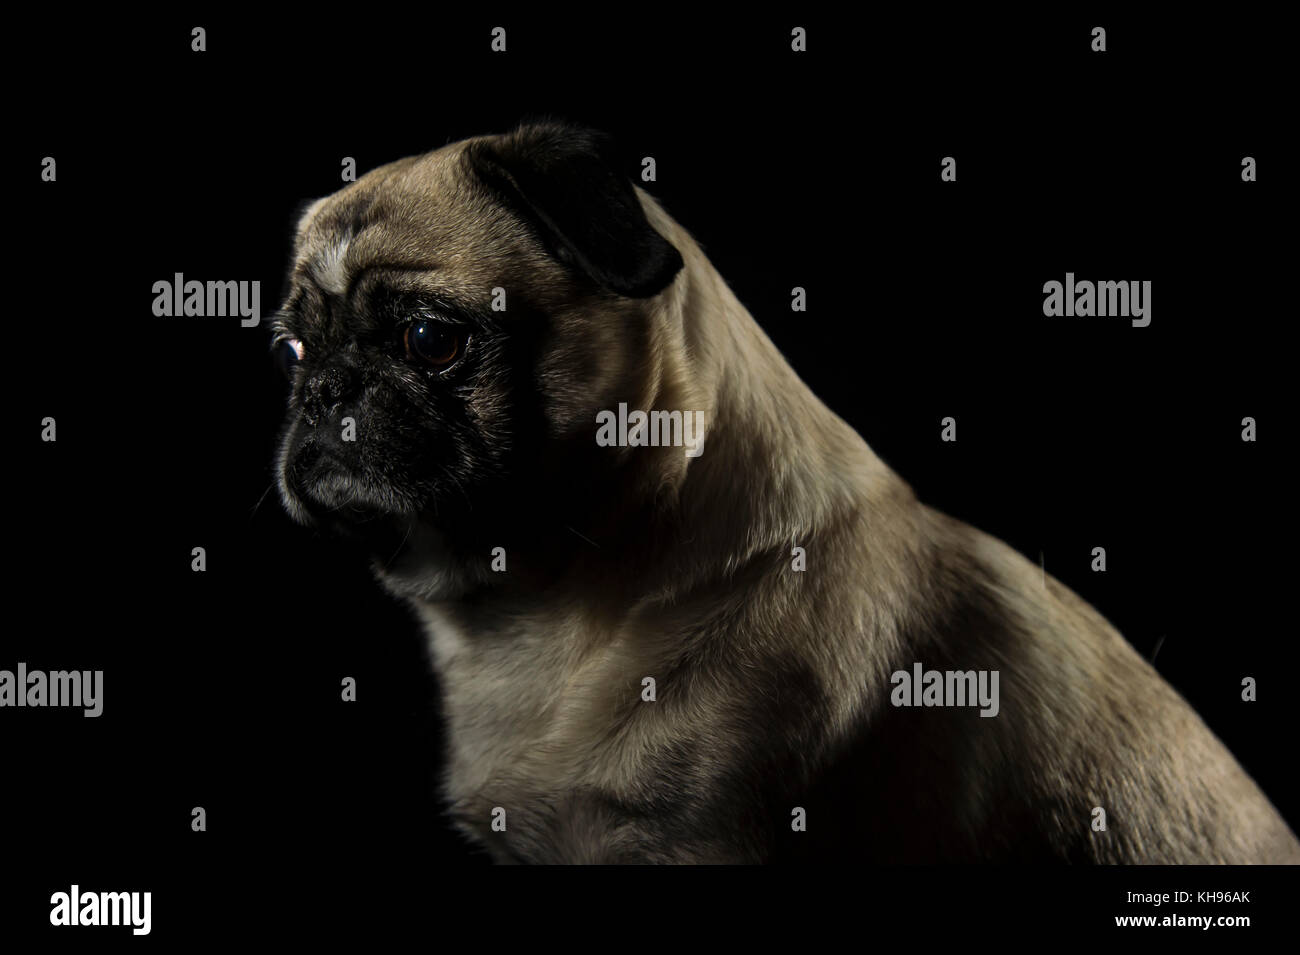 Dog pug sitting and looking to left side in front ob black background - Stock Image